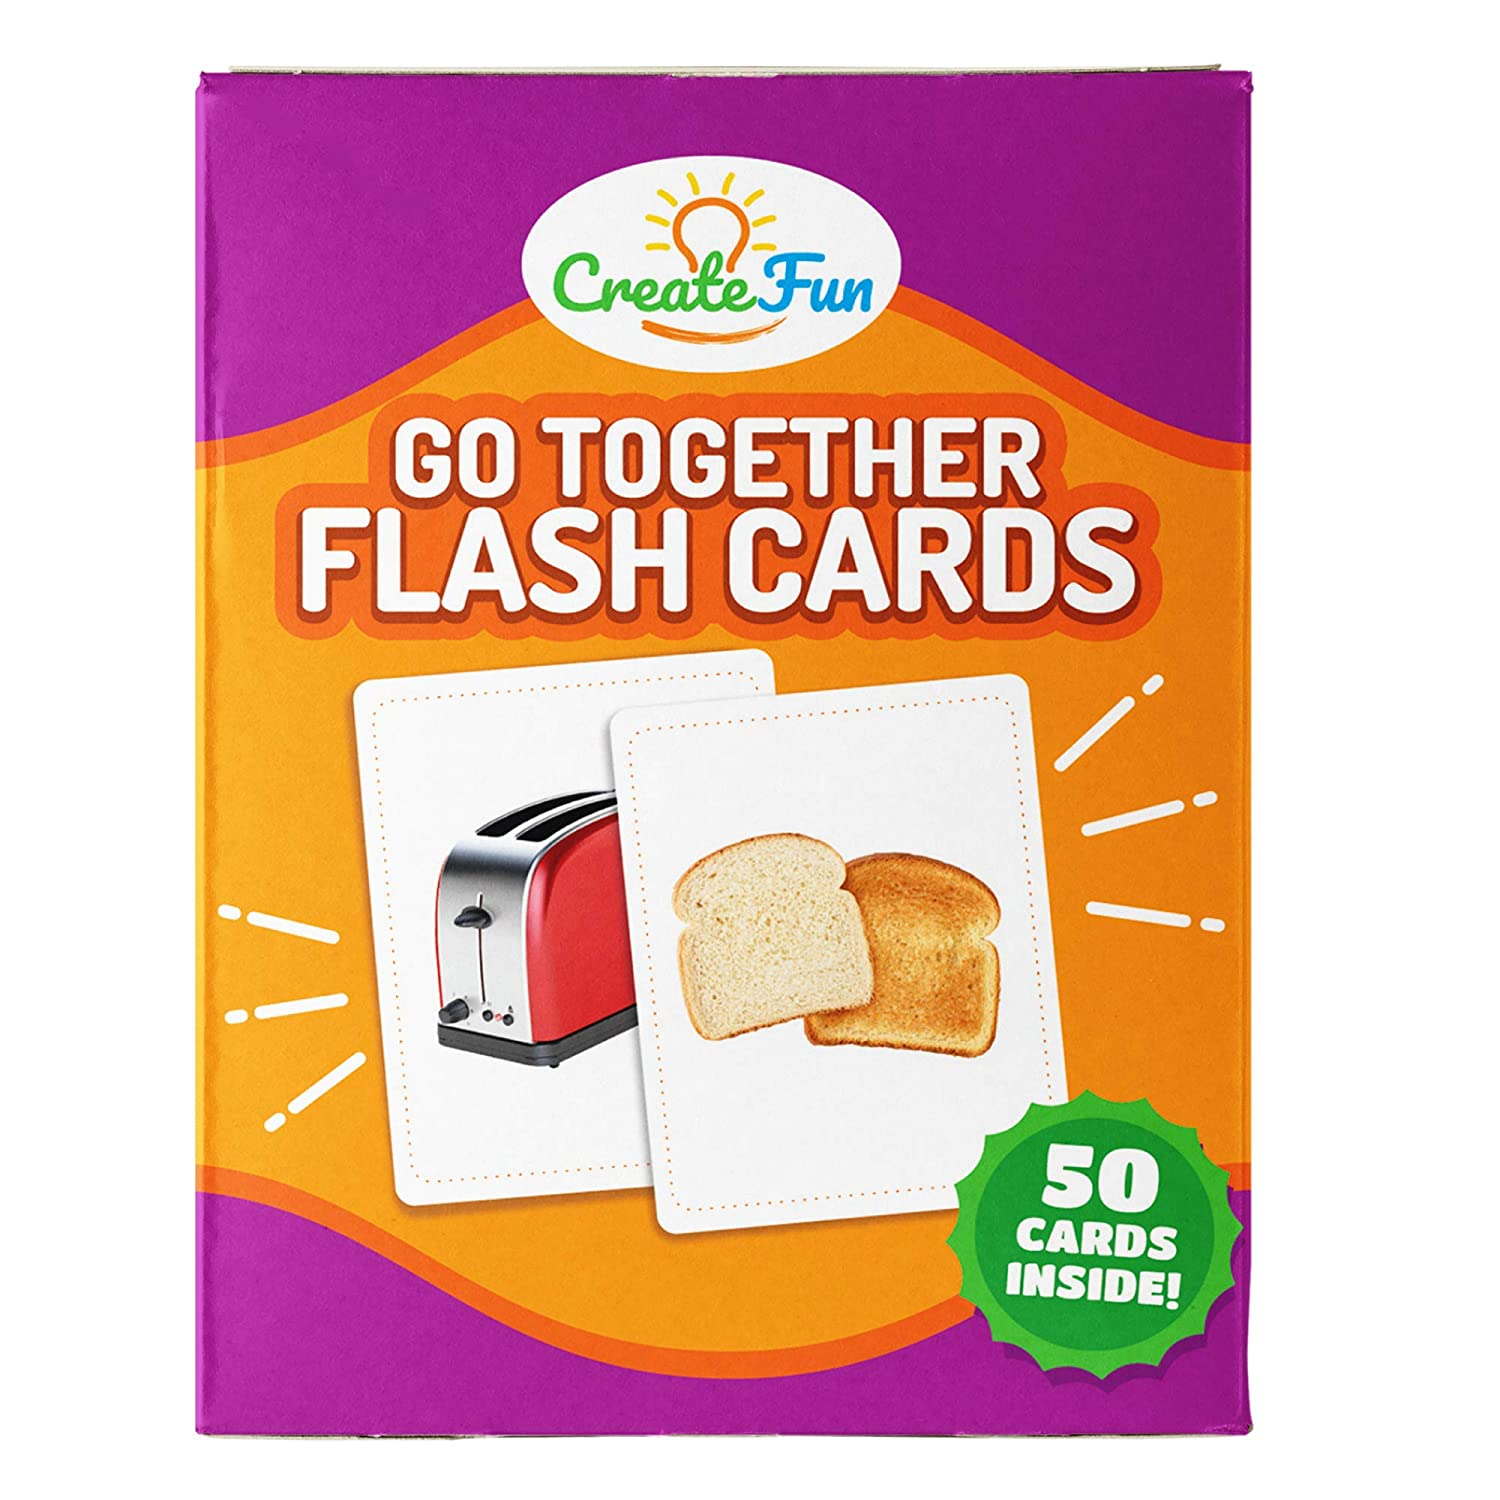 Go Together Flash Cards | 50 Matching Language Development Educational Photo Cards | with 7 Starter Learning Games | for Parents, The Classroom, Speech Therapy Materials and Montessori Materials